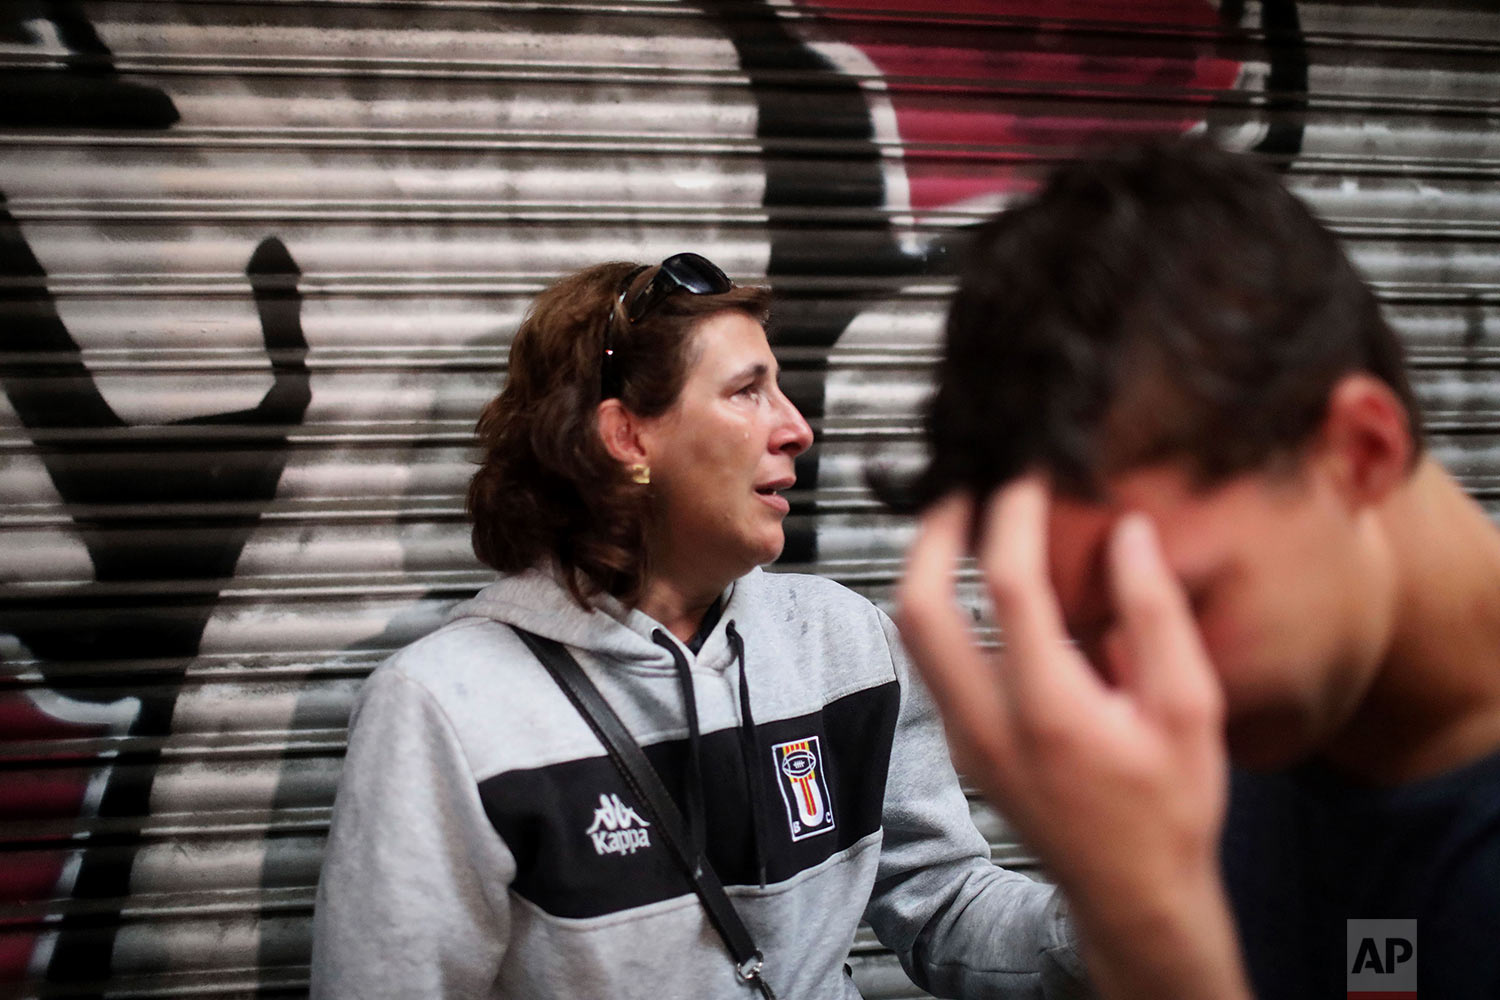 A woman and her son react as Spanish National Police storm the Ramon Llull school assigned to be a polling station by the Catalan government in Barcelona, Spain, early Sunday, 1 Oct. 2017. The Spanish government and its security forces are trying to prevent voting in the independence referendum, which is backed by Catalan regional authorities. Spanish officials had said force wouldn't be used, but that voting wouldn't be allowed. (AP Photo/Manu Brabo)